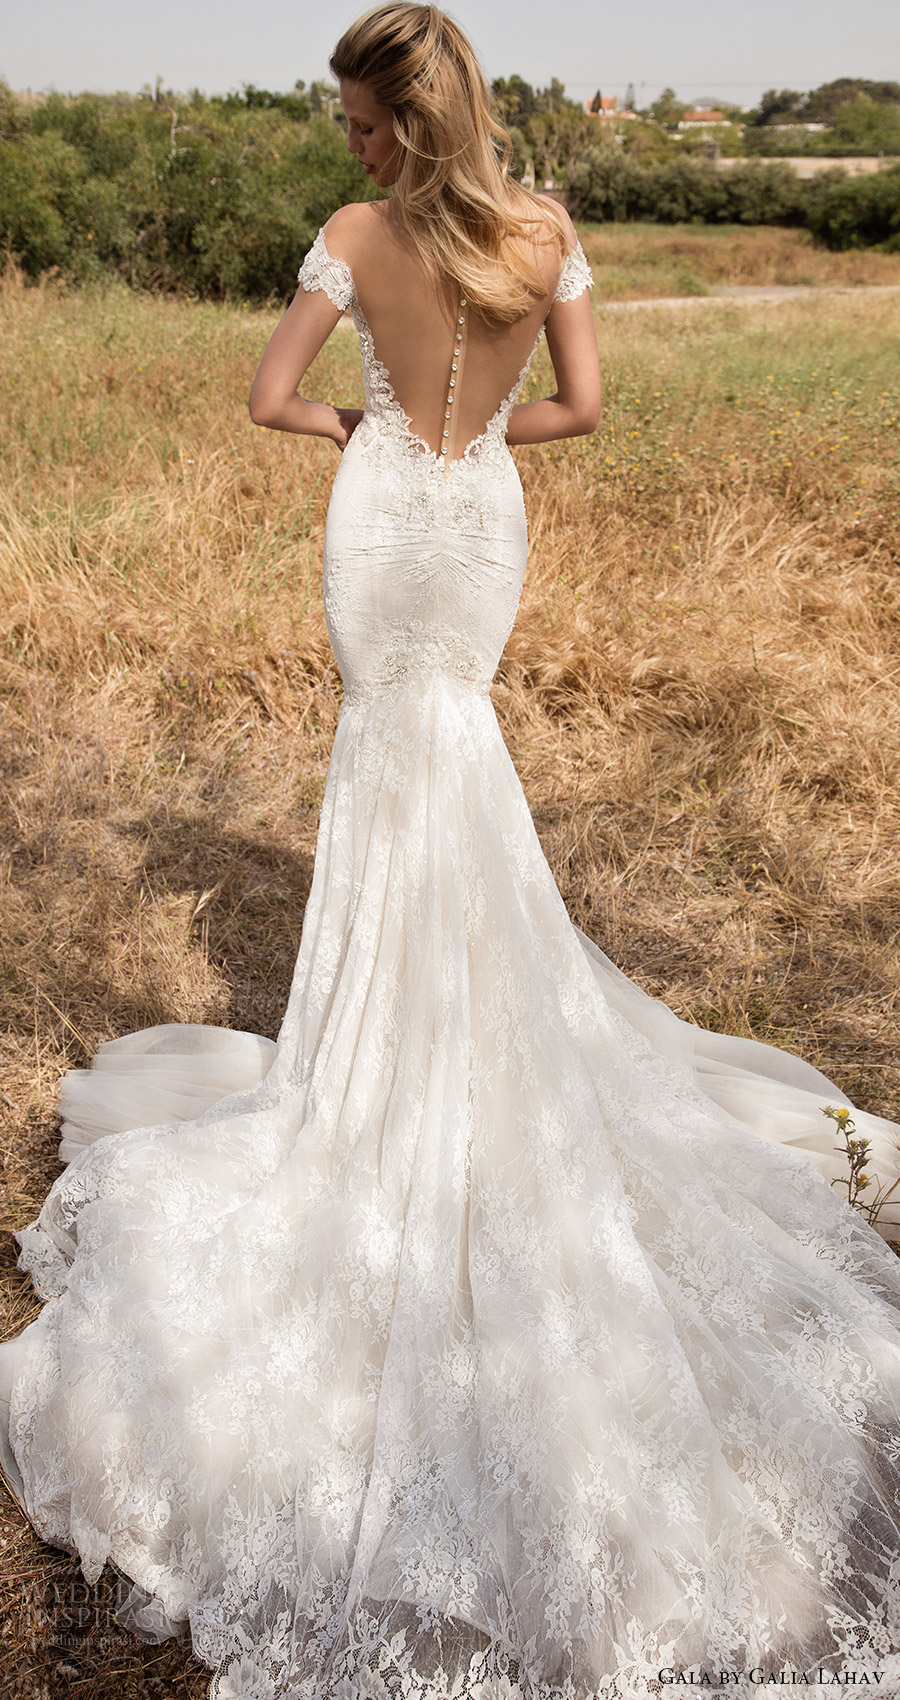 gala galia lahav spring 2017 illusion off shoulder cap sleeves deep vneck mermaid wedding dress (702) bv illusion low back train